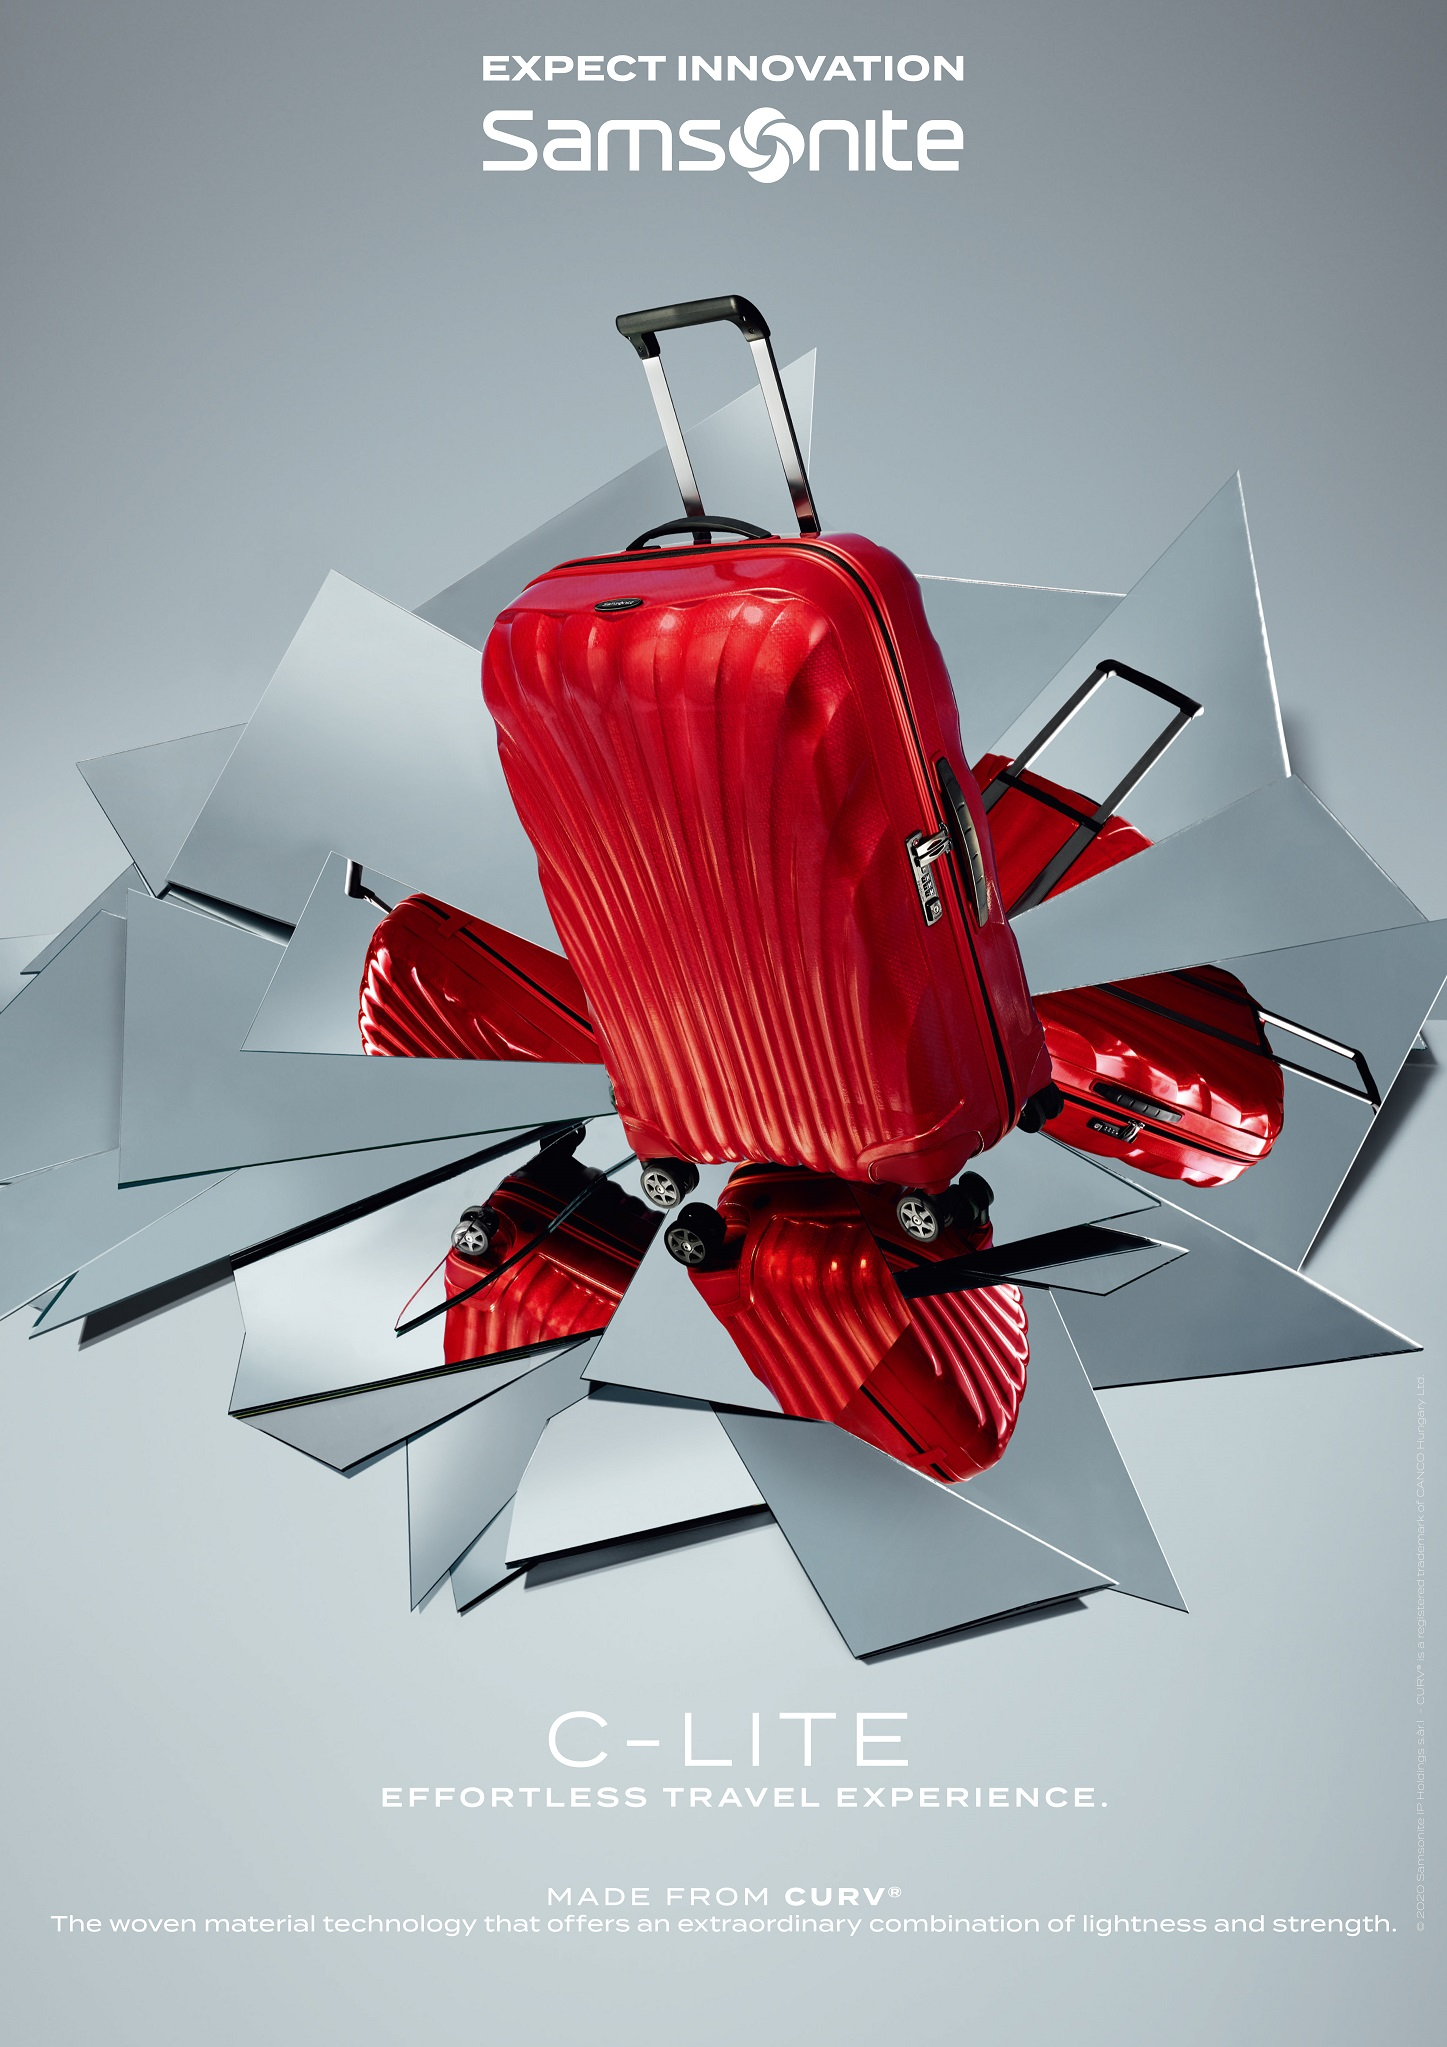 SAMSONITE_C-LITE